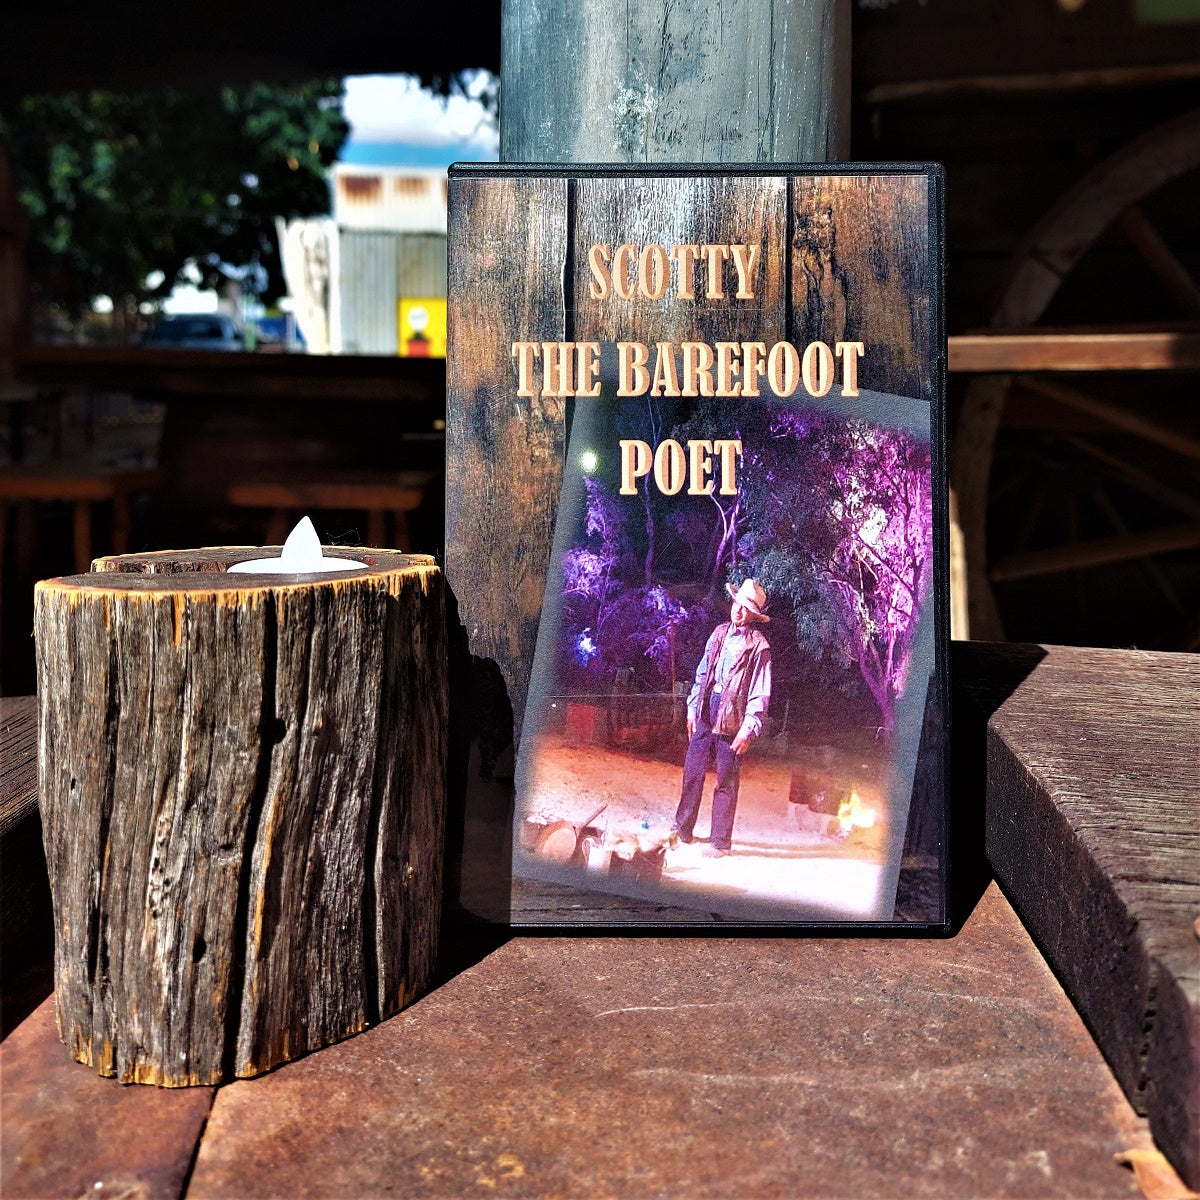 Outback Pioneers DVD Scotty the Barefoot Poet